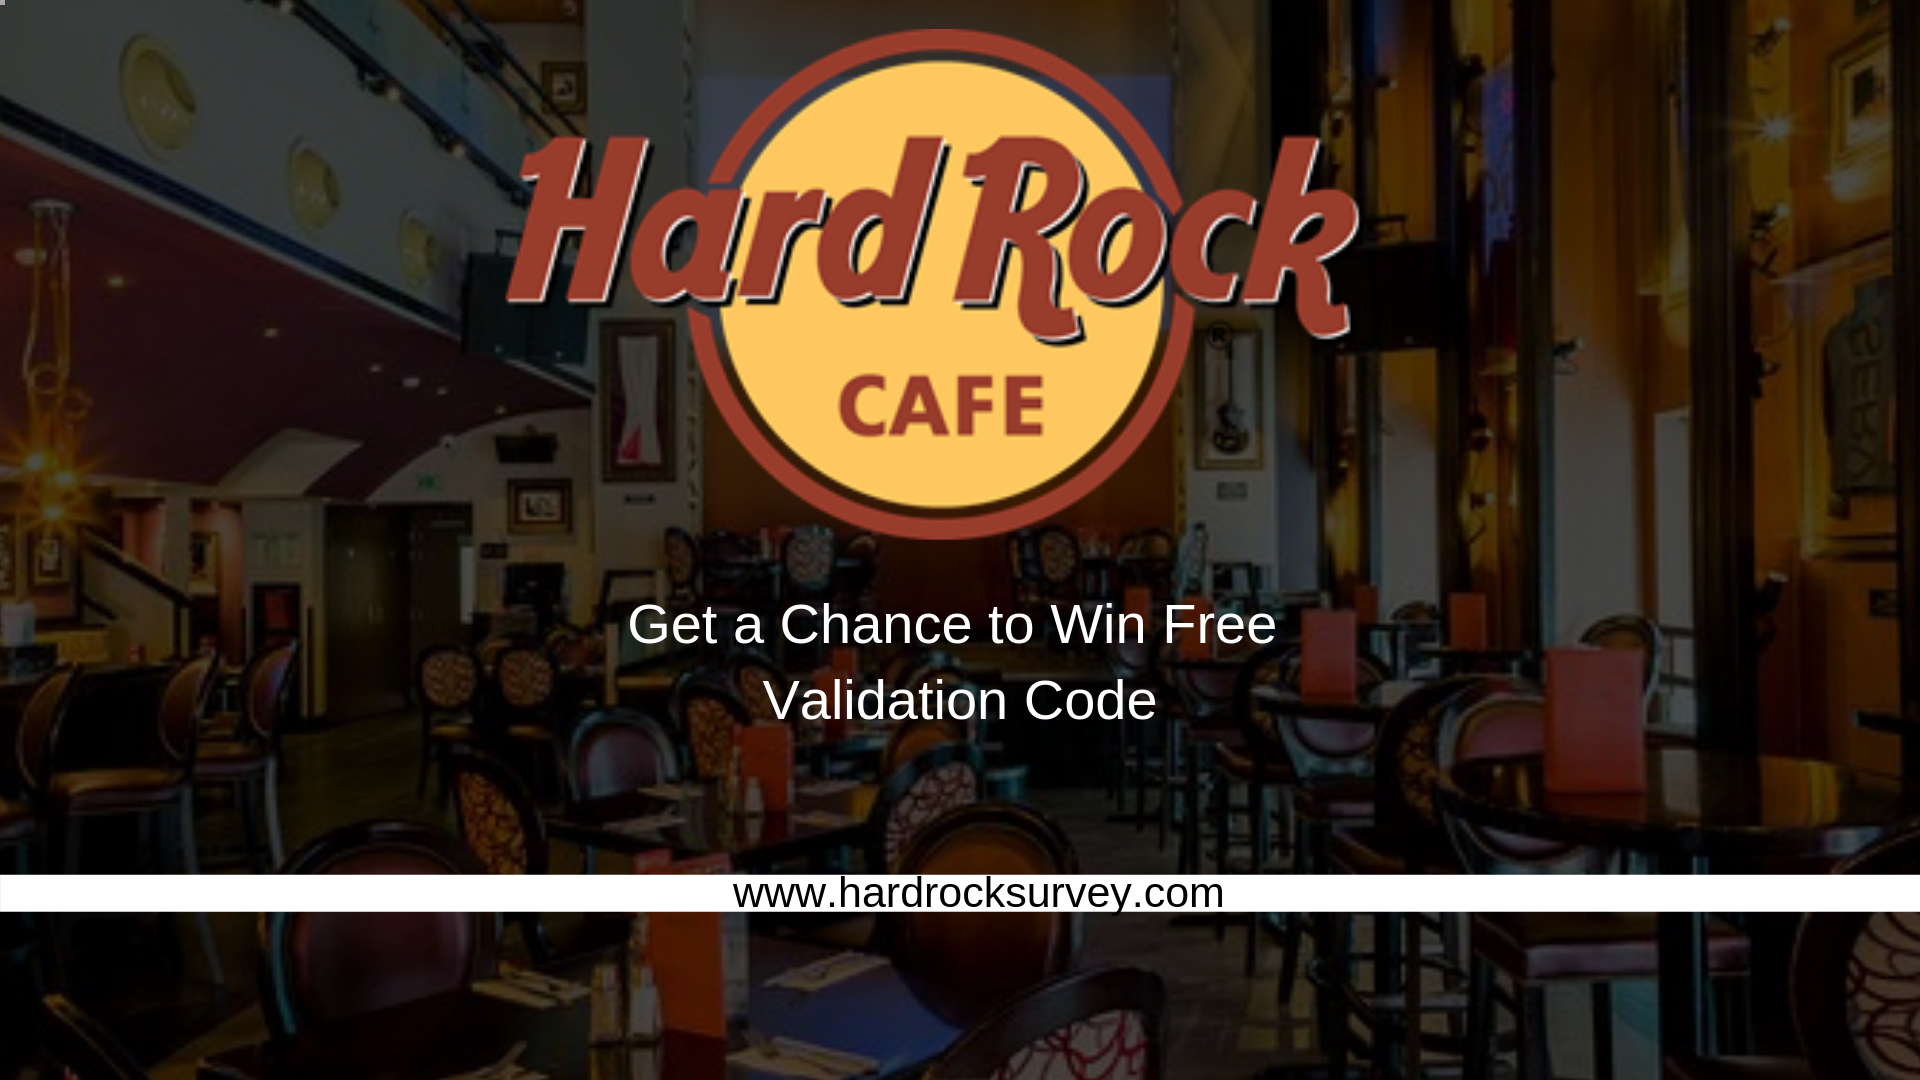 Hard Rock Survey | Get a Chance to Win Free Validation Code